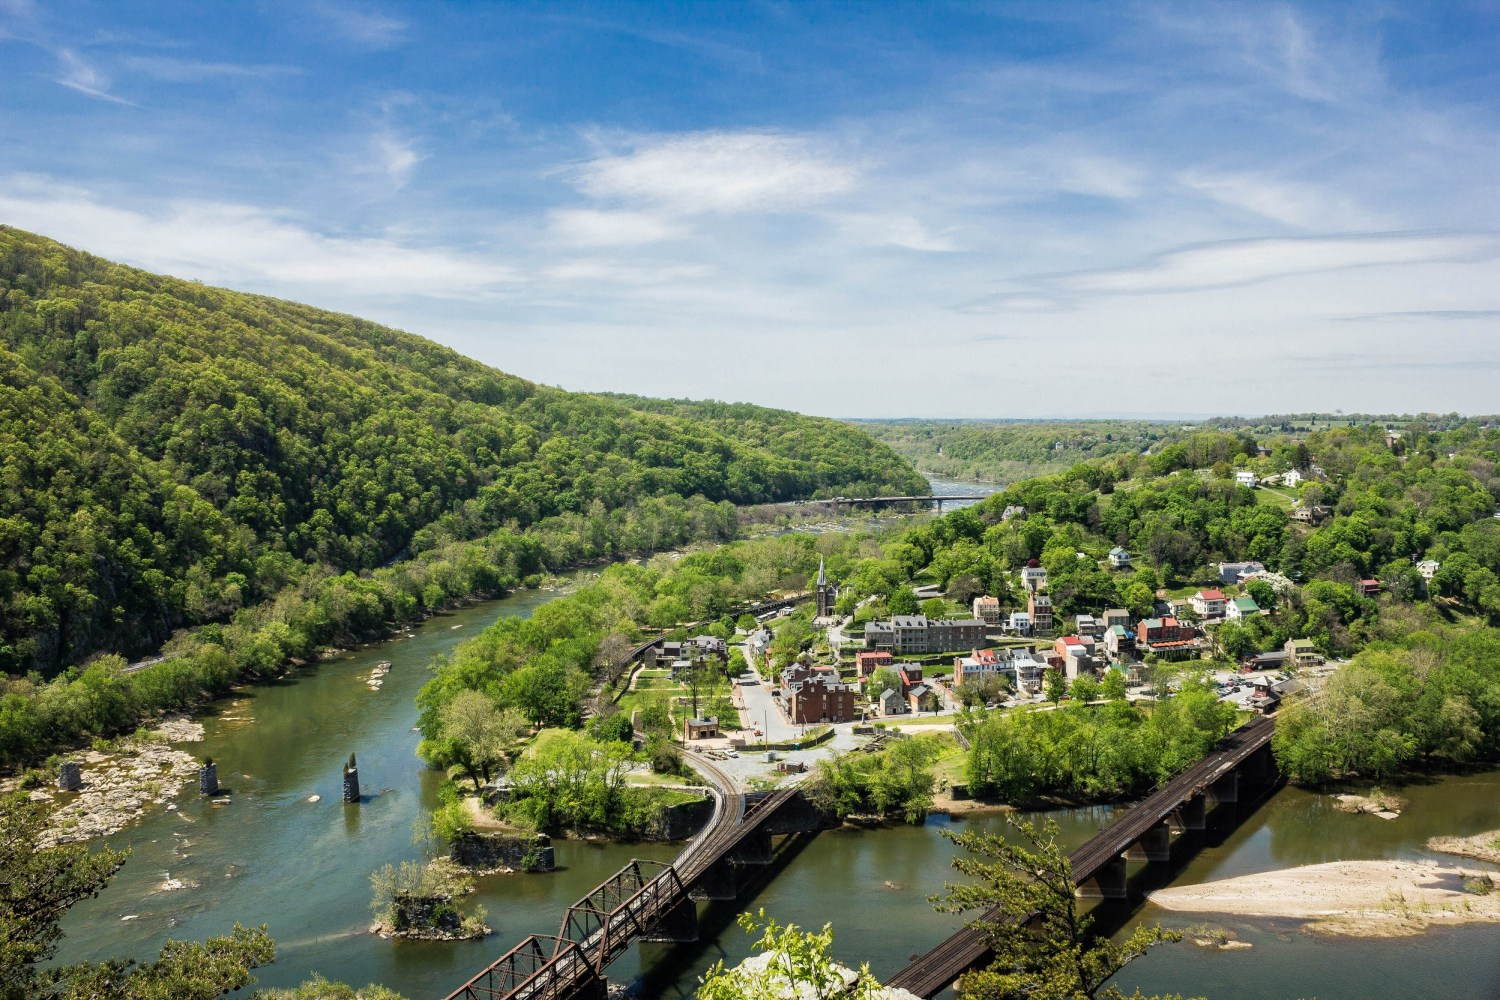 The Shenandoah River, left, joins the Potomac at Harpers Ferry, West Virginia. Maryland's control over the Potomac is the source of potential legal action by West Virginia.